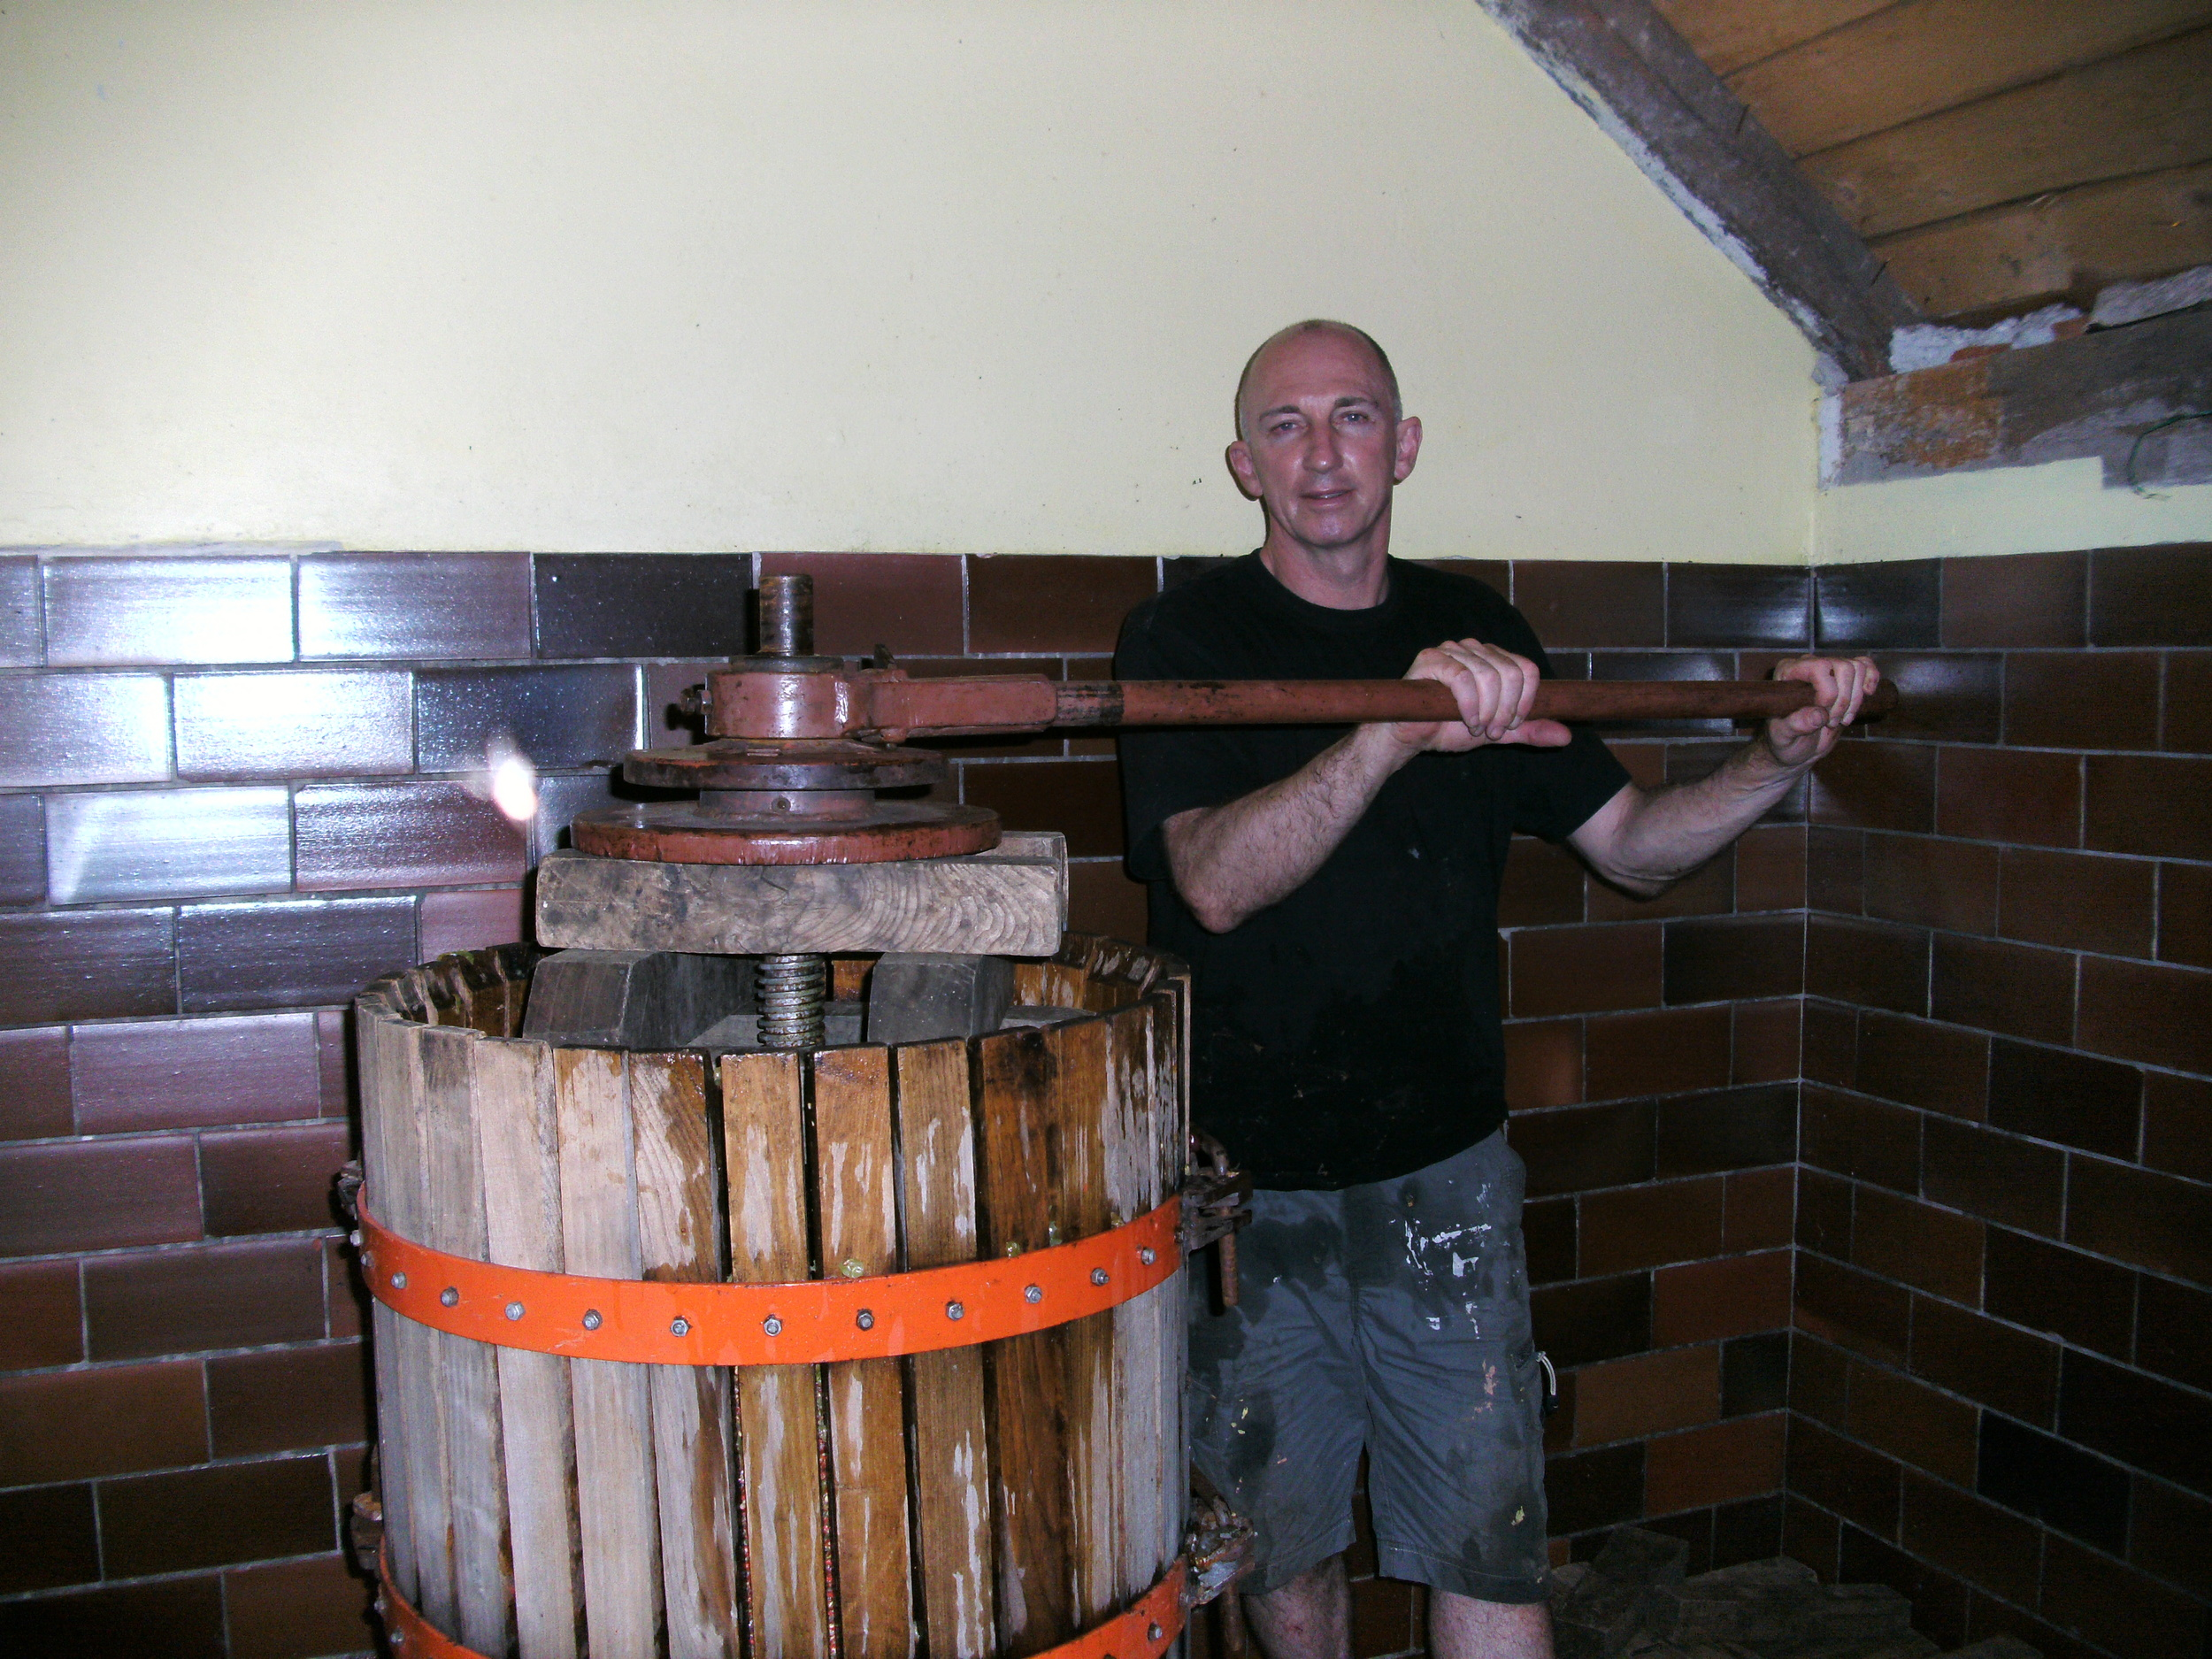 Using a basket press to squeeze juice from the grapes